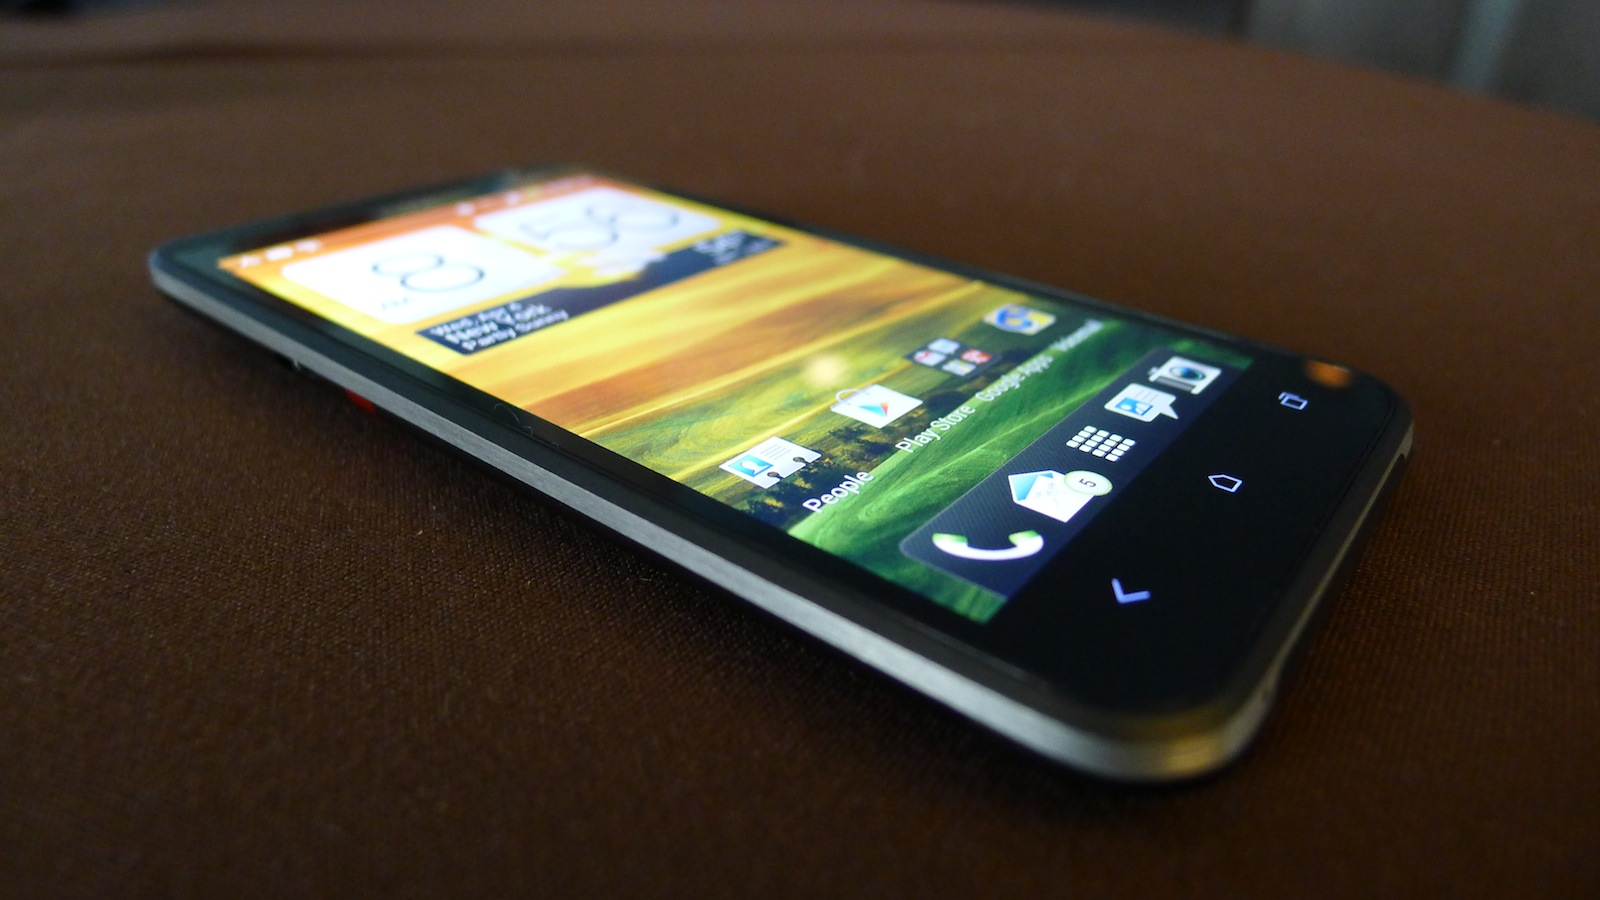 Click here to read HTC Evo 4G LTE Hands On: One Serious Piece of Slick